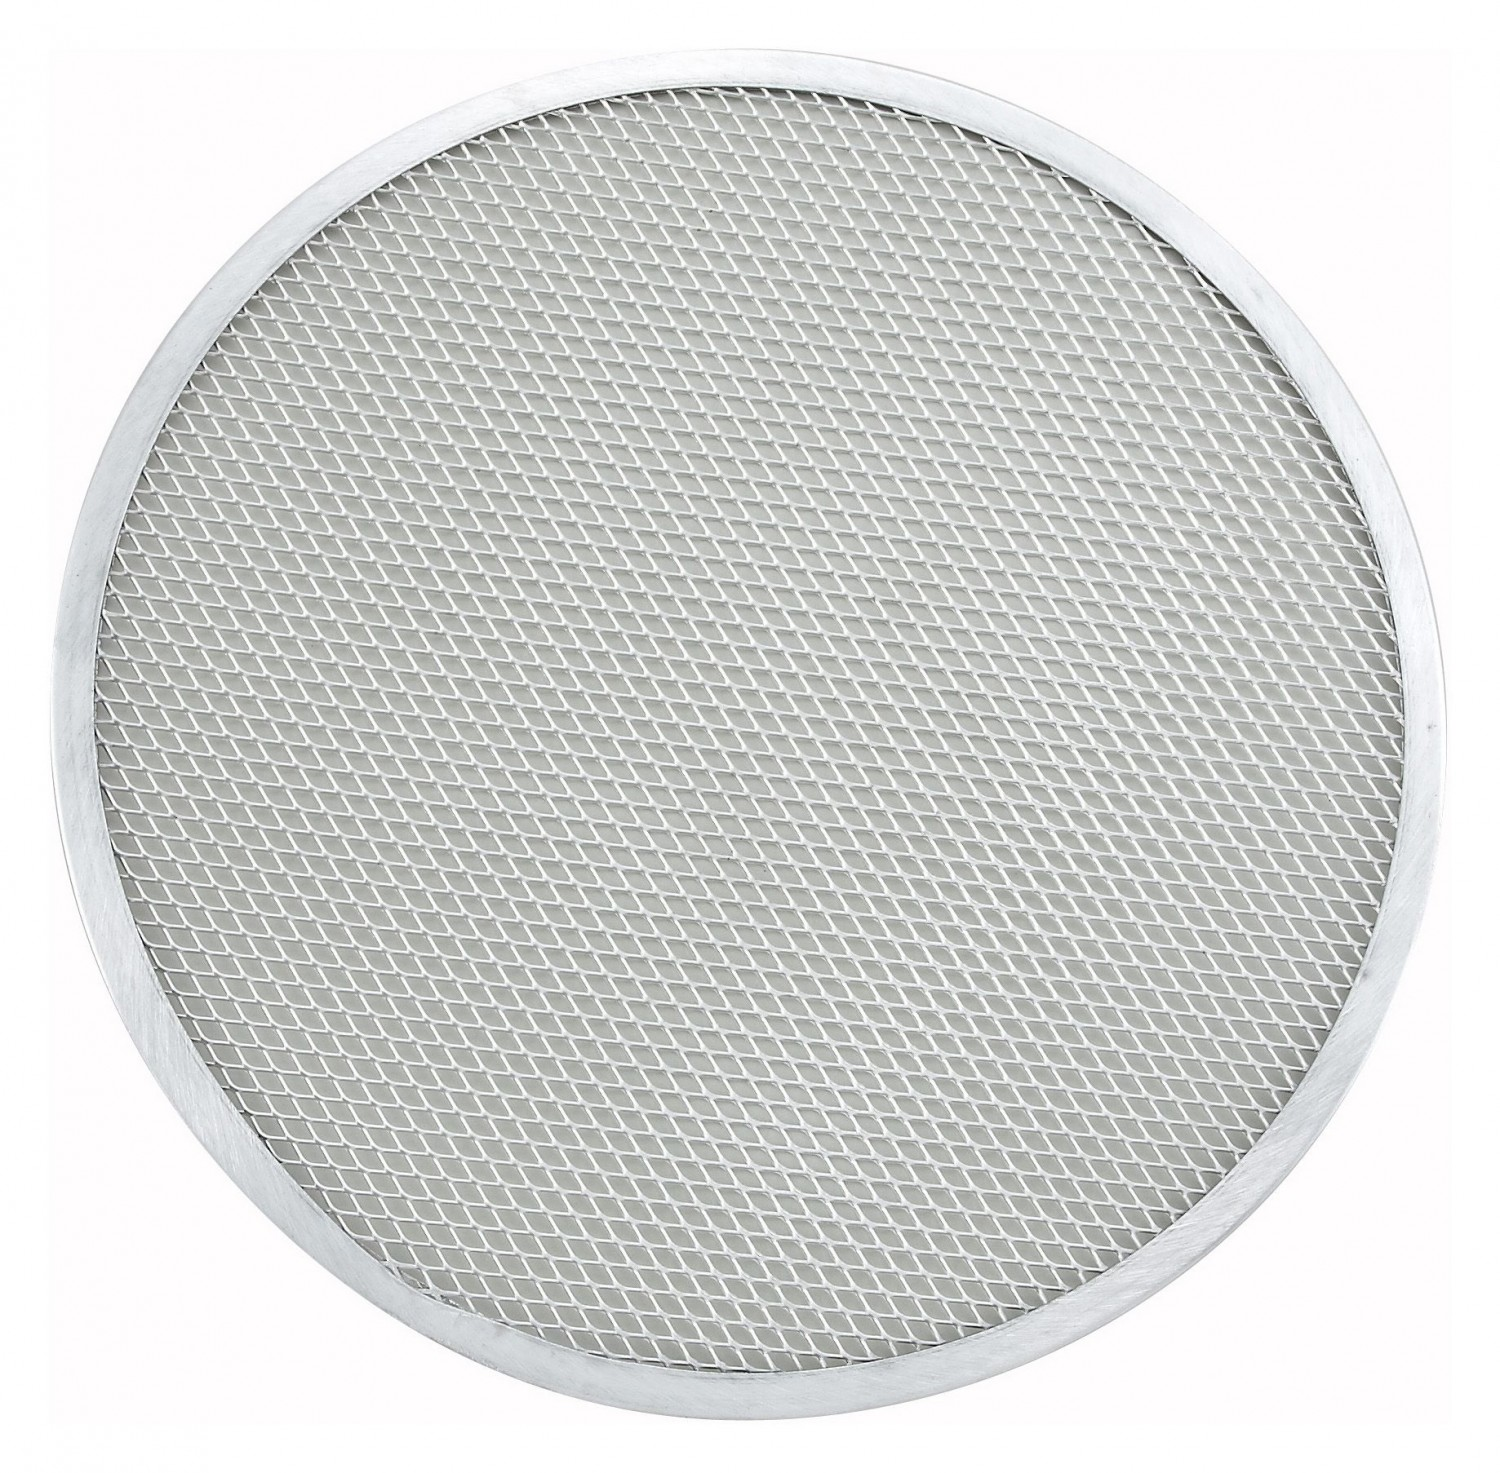 Winco APZS-13 Aluminum Seamless Pizza Screen 13""